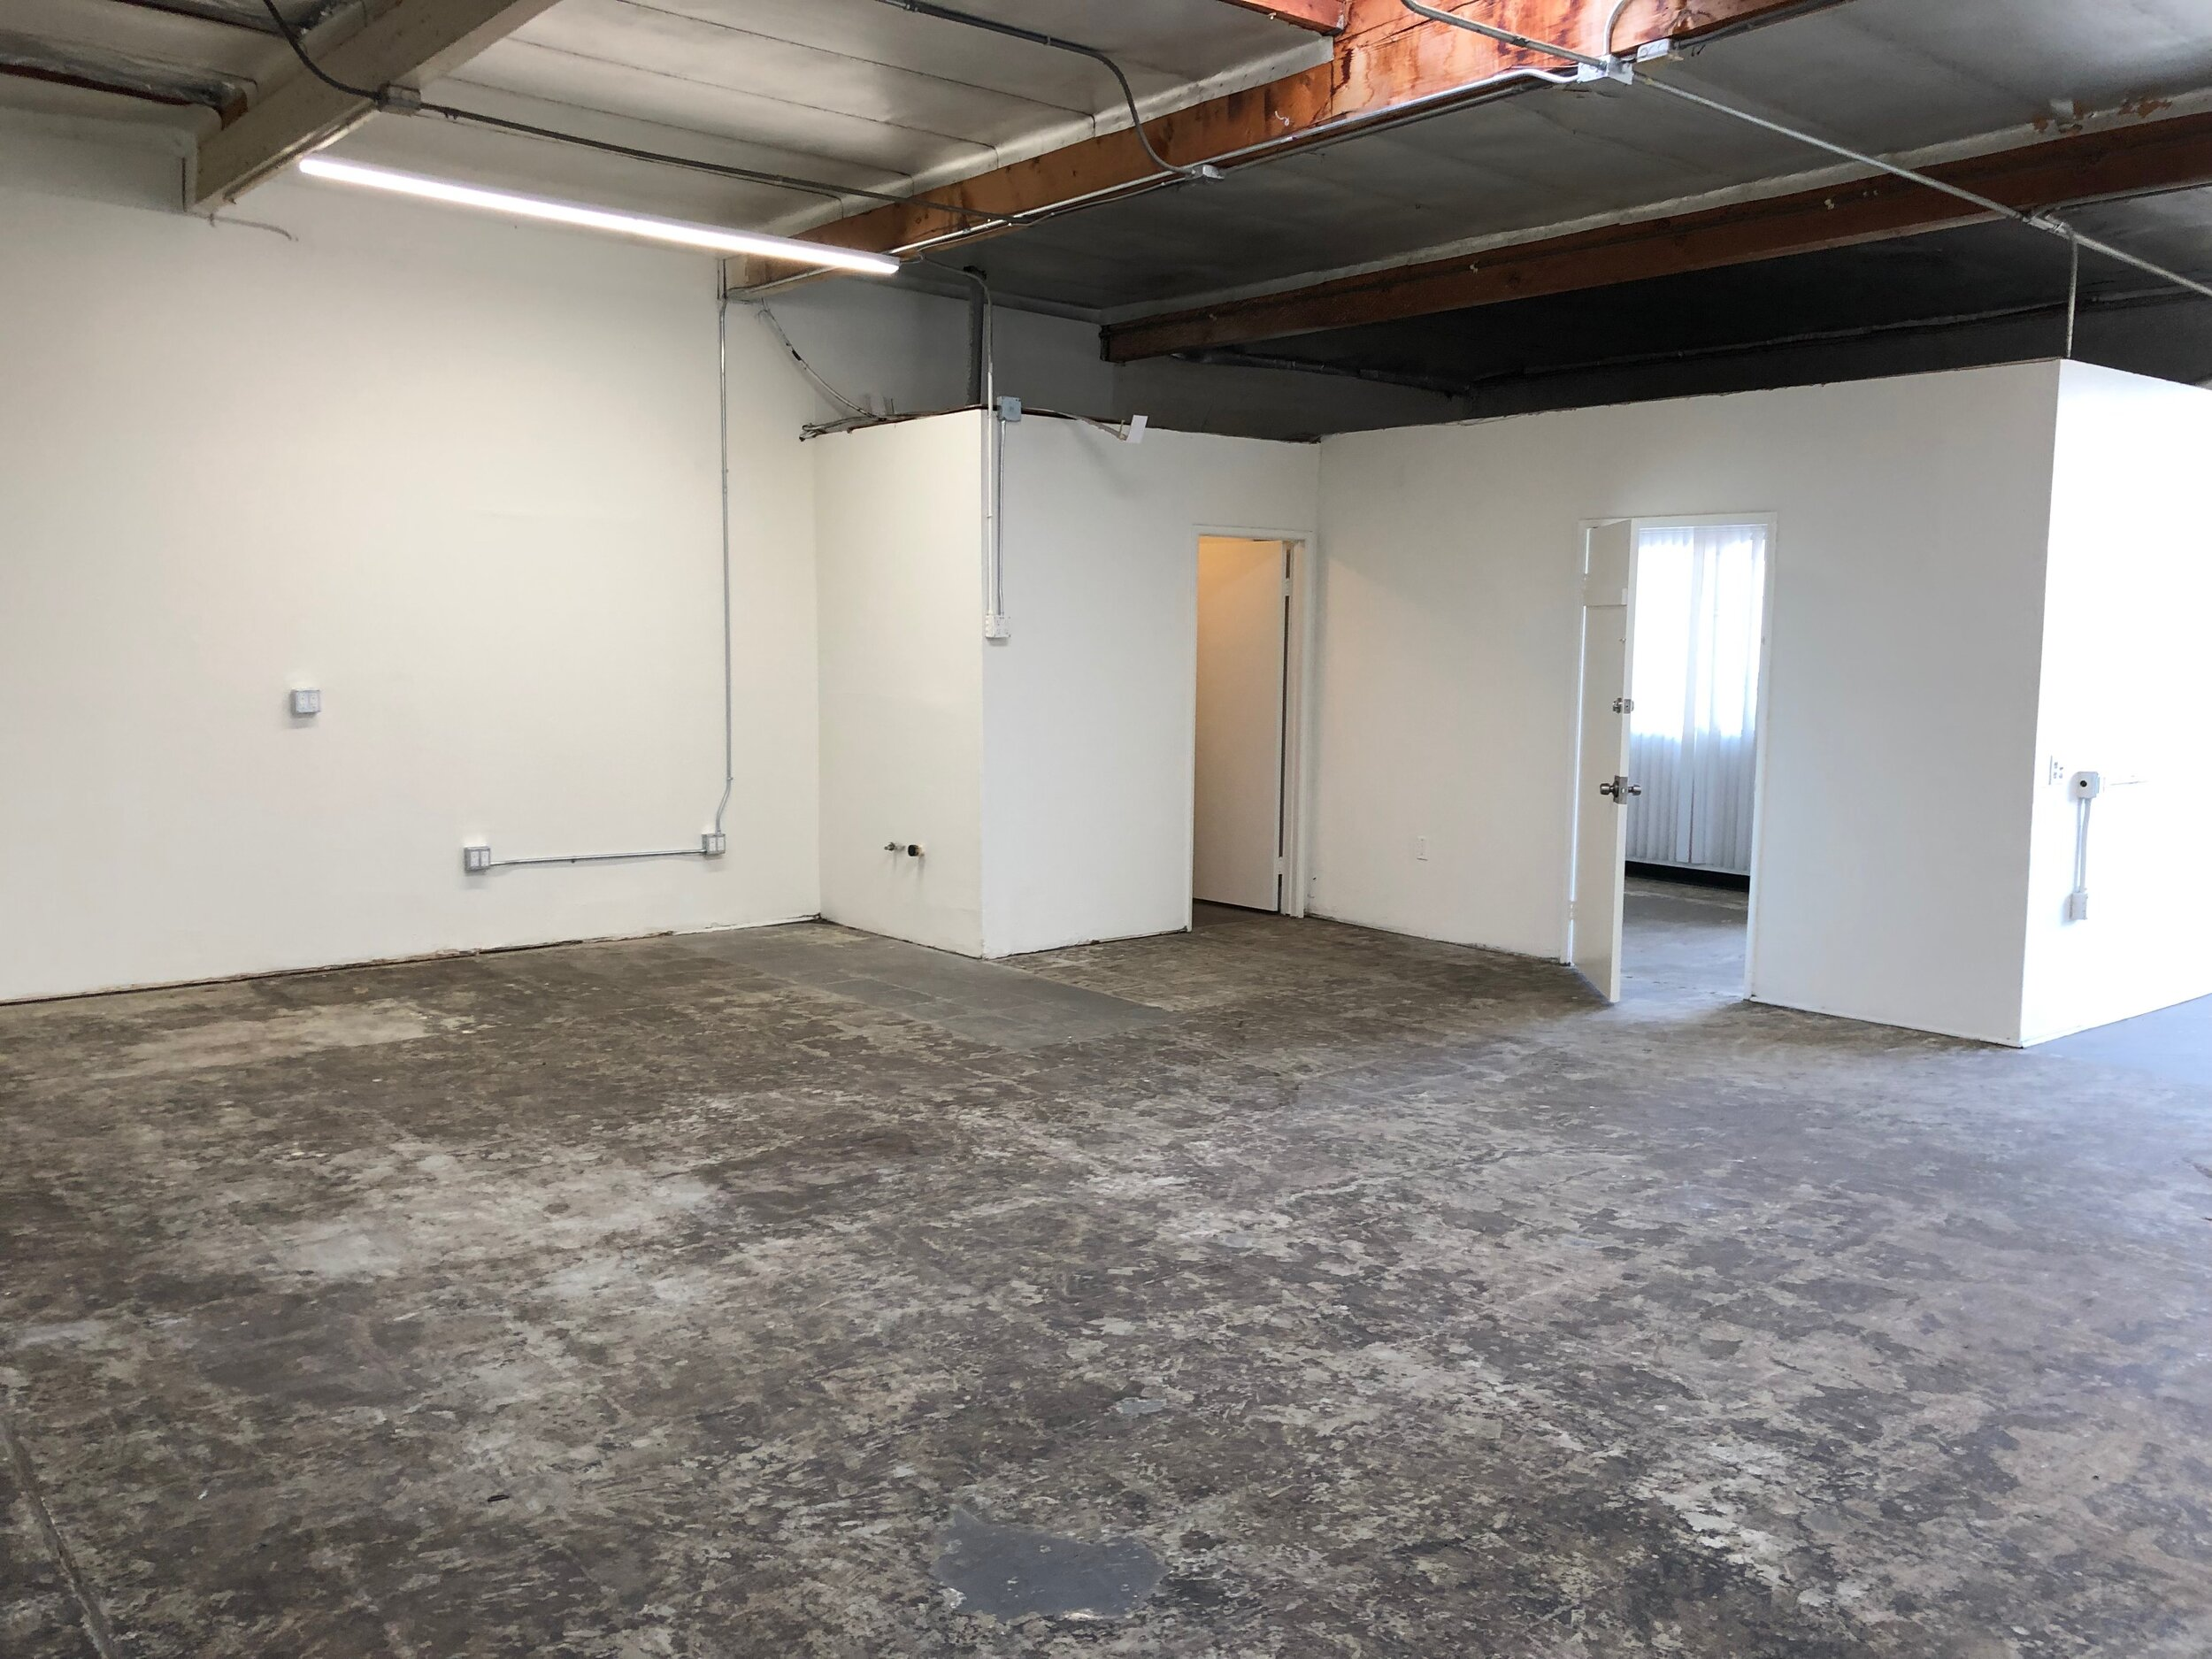 The blank shell before the floors were ground and cleaned